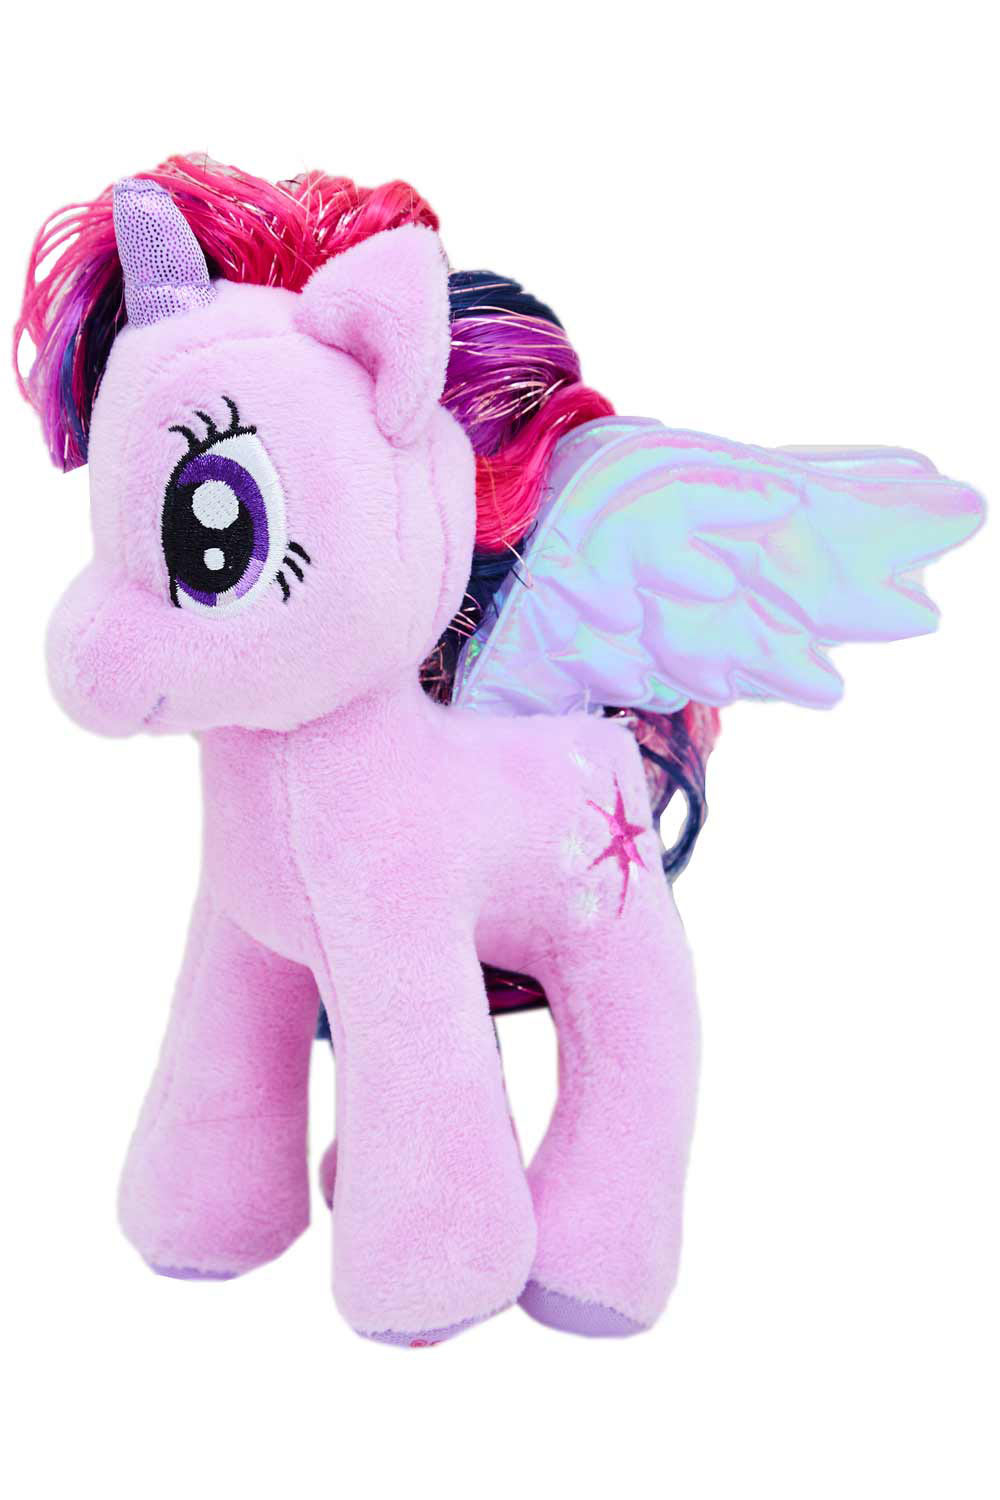 TY 41004 - My Little Pony Baby - Schmusetier Twilight Sparkle, 15 cm